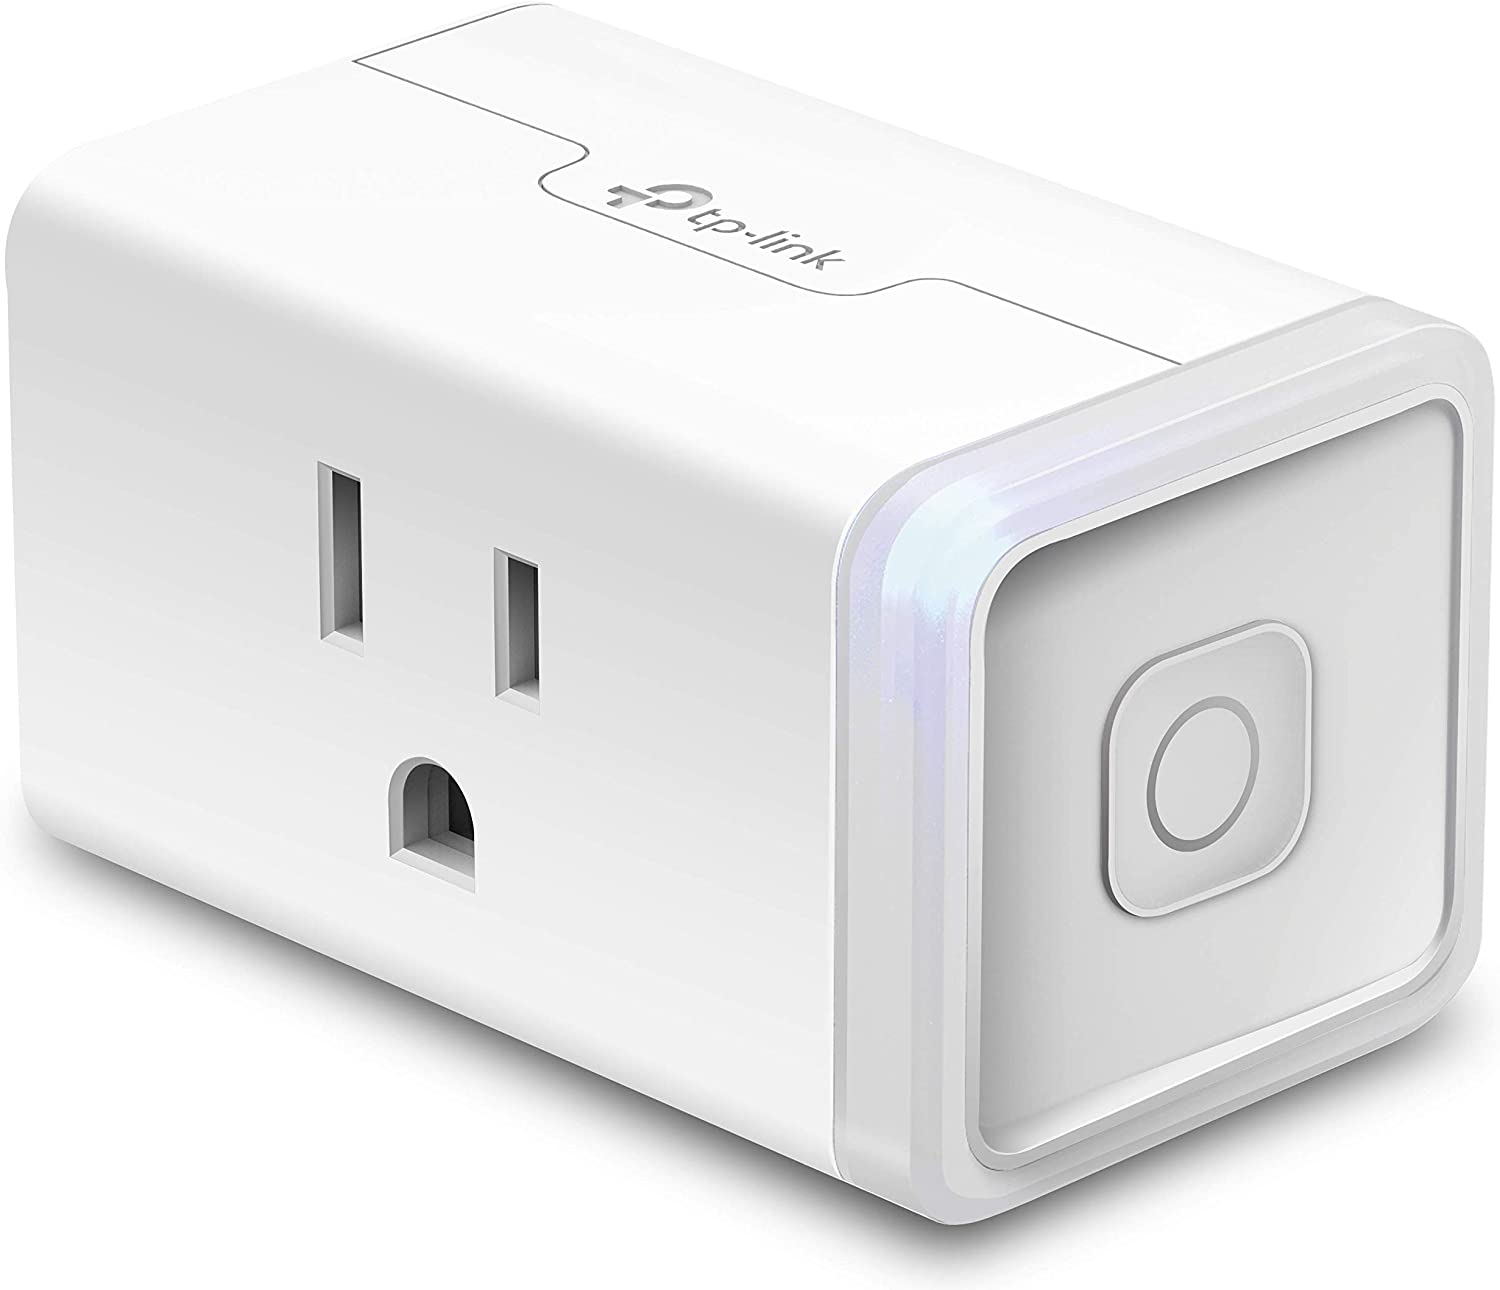 .99 Kasa Smart Plug Mini, Smart Home Wi-Fi Outlet Works with Alexa & Google Home + Free shipping for amazon prime members at Amazon!